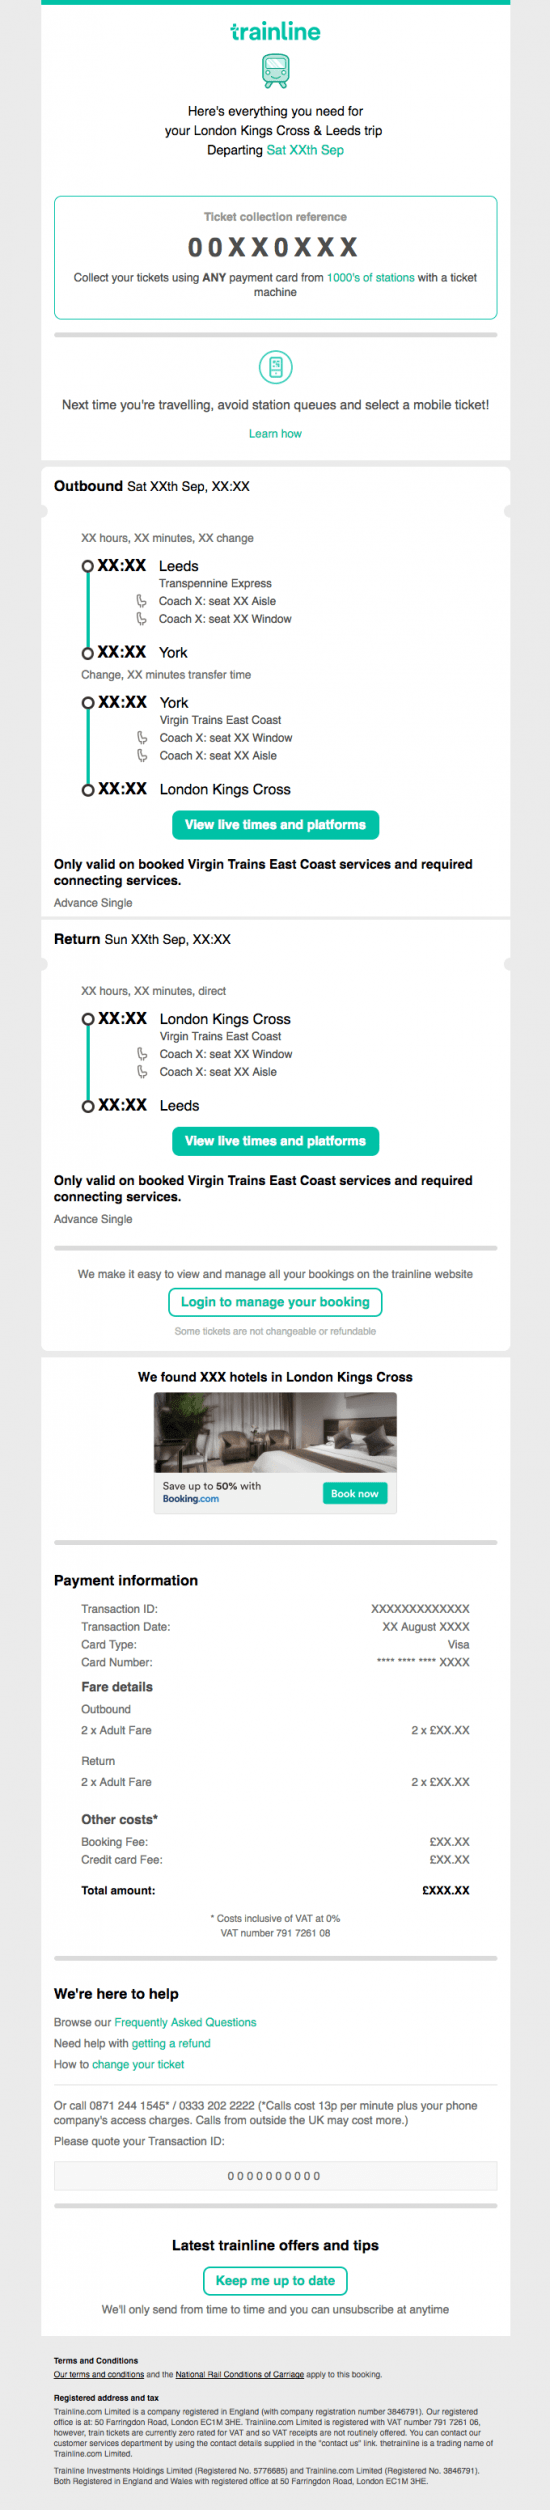 Well designed travel booking confirmation email